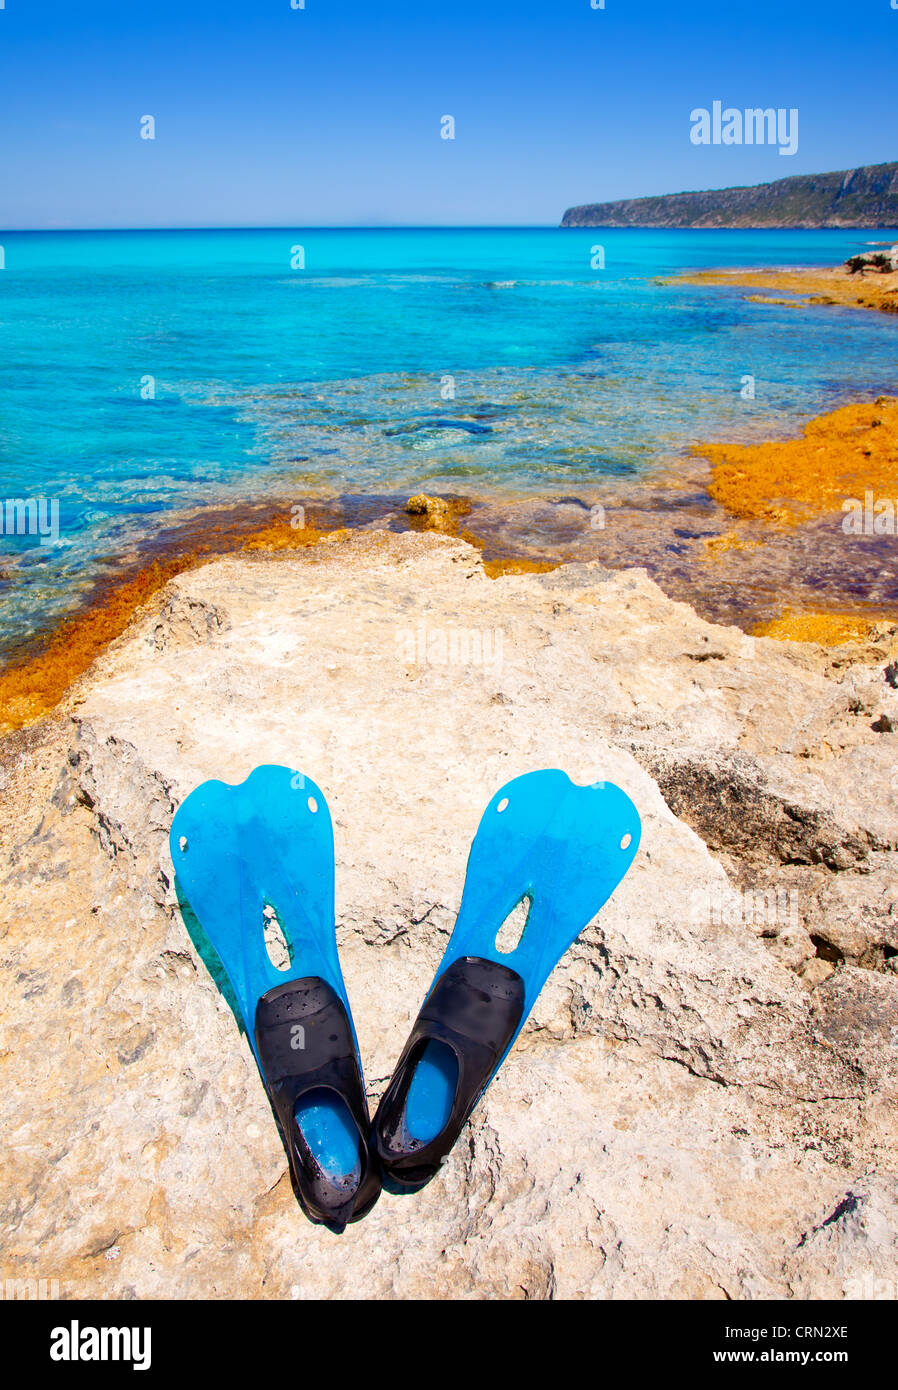 Balearic Formentera island with scuba diving blue fins on a rock - Stock Image